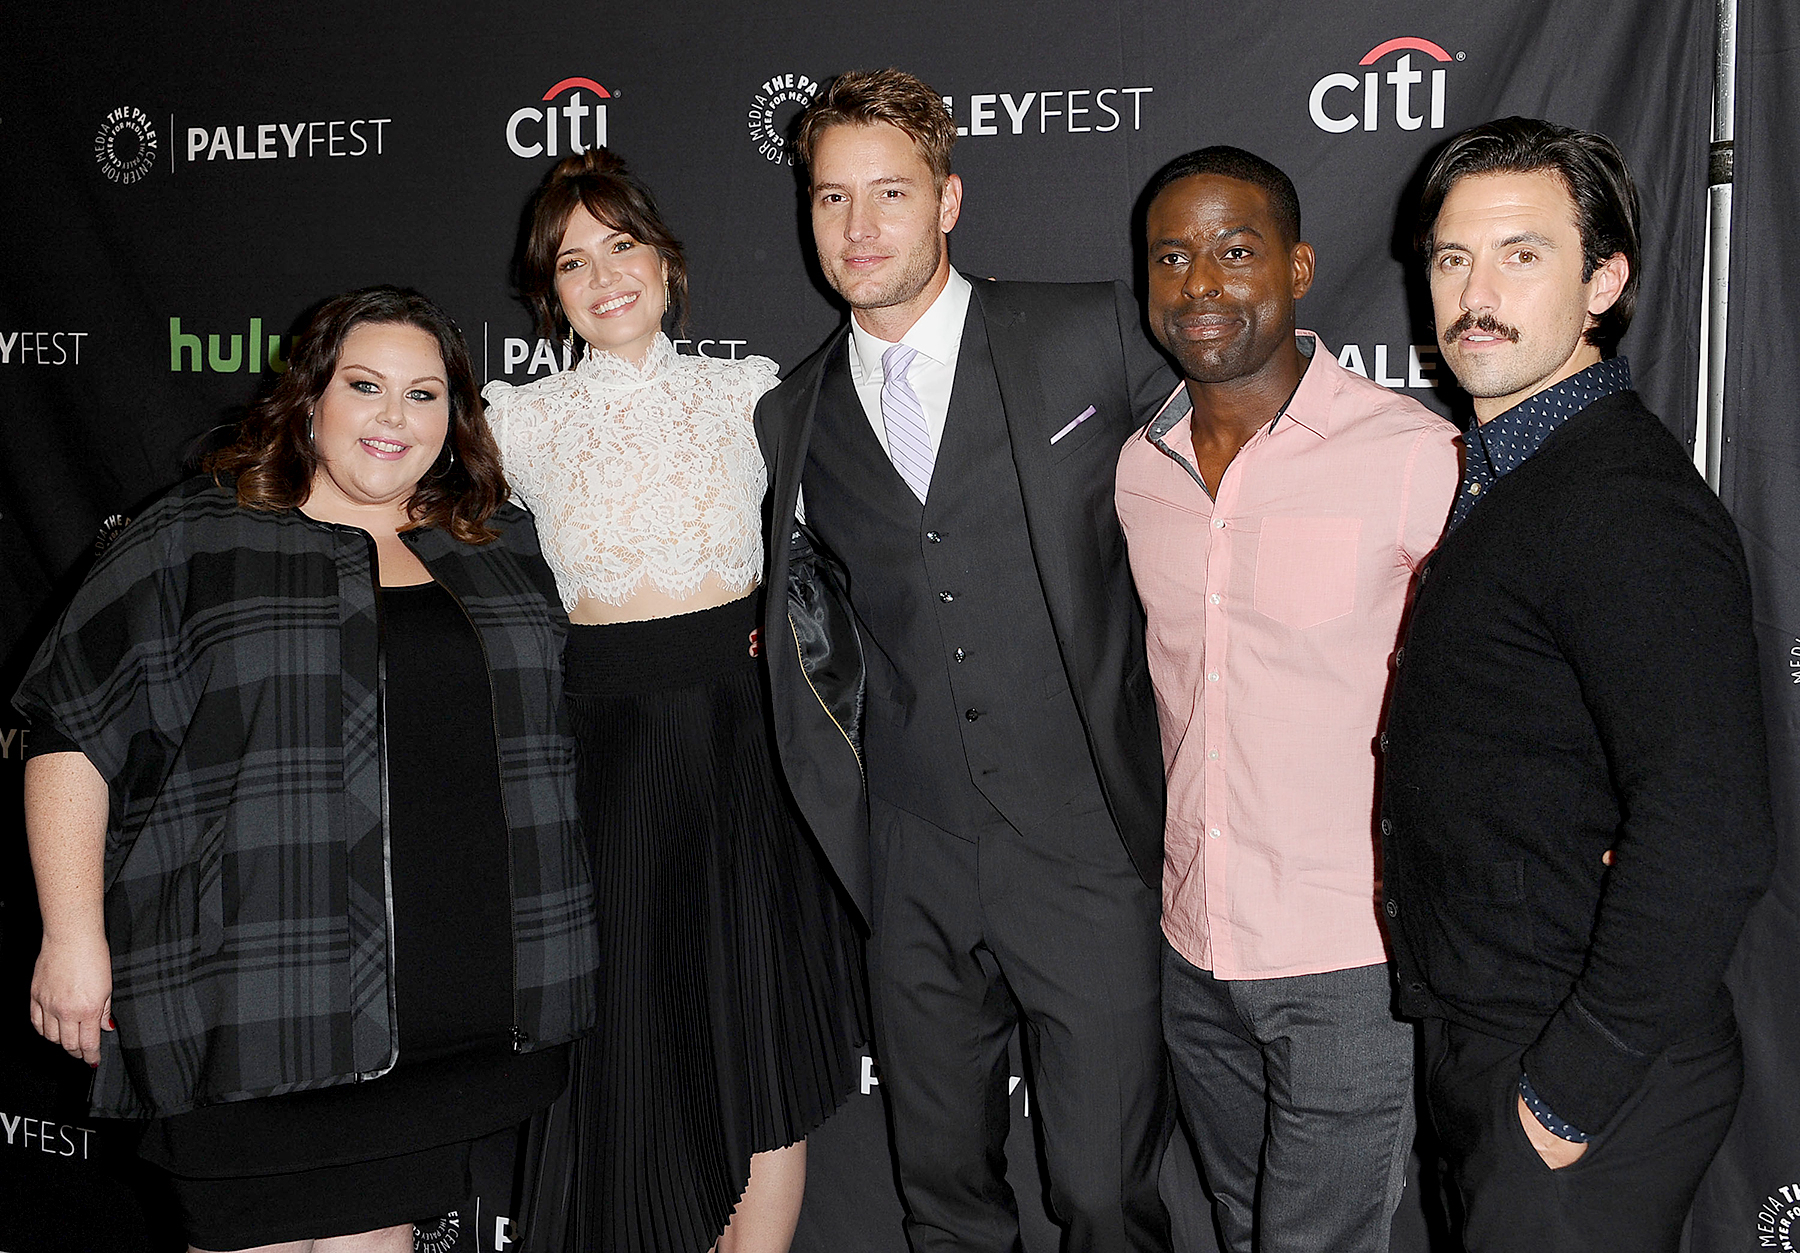 Chrissy Metz, Mandy Moore, Justin Hartley, Sterling K. Brown and Milo Ventimiglia attend the NBC event at the PaleyFest 2016 fall TV preview at The Paley Center for Media on September 13, 2016 in Beverly Hills, California.